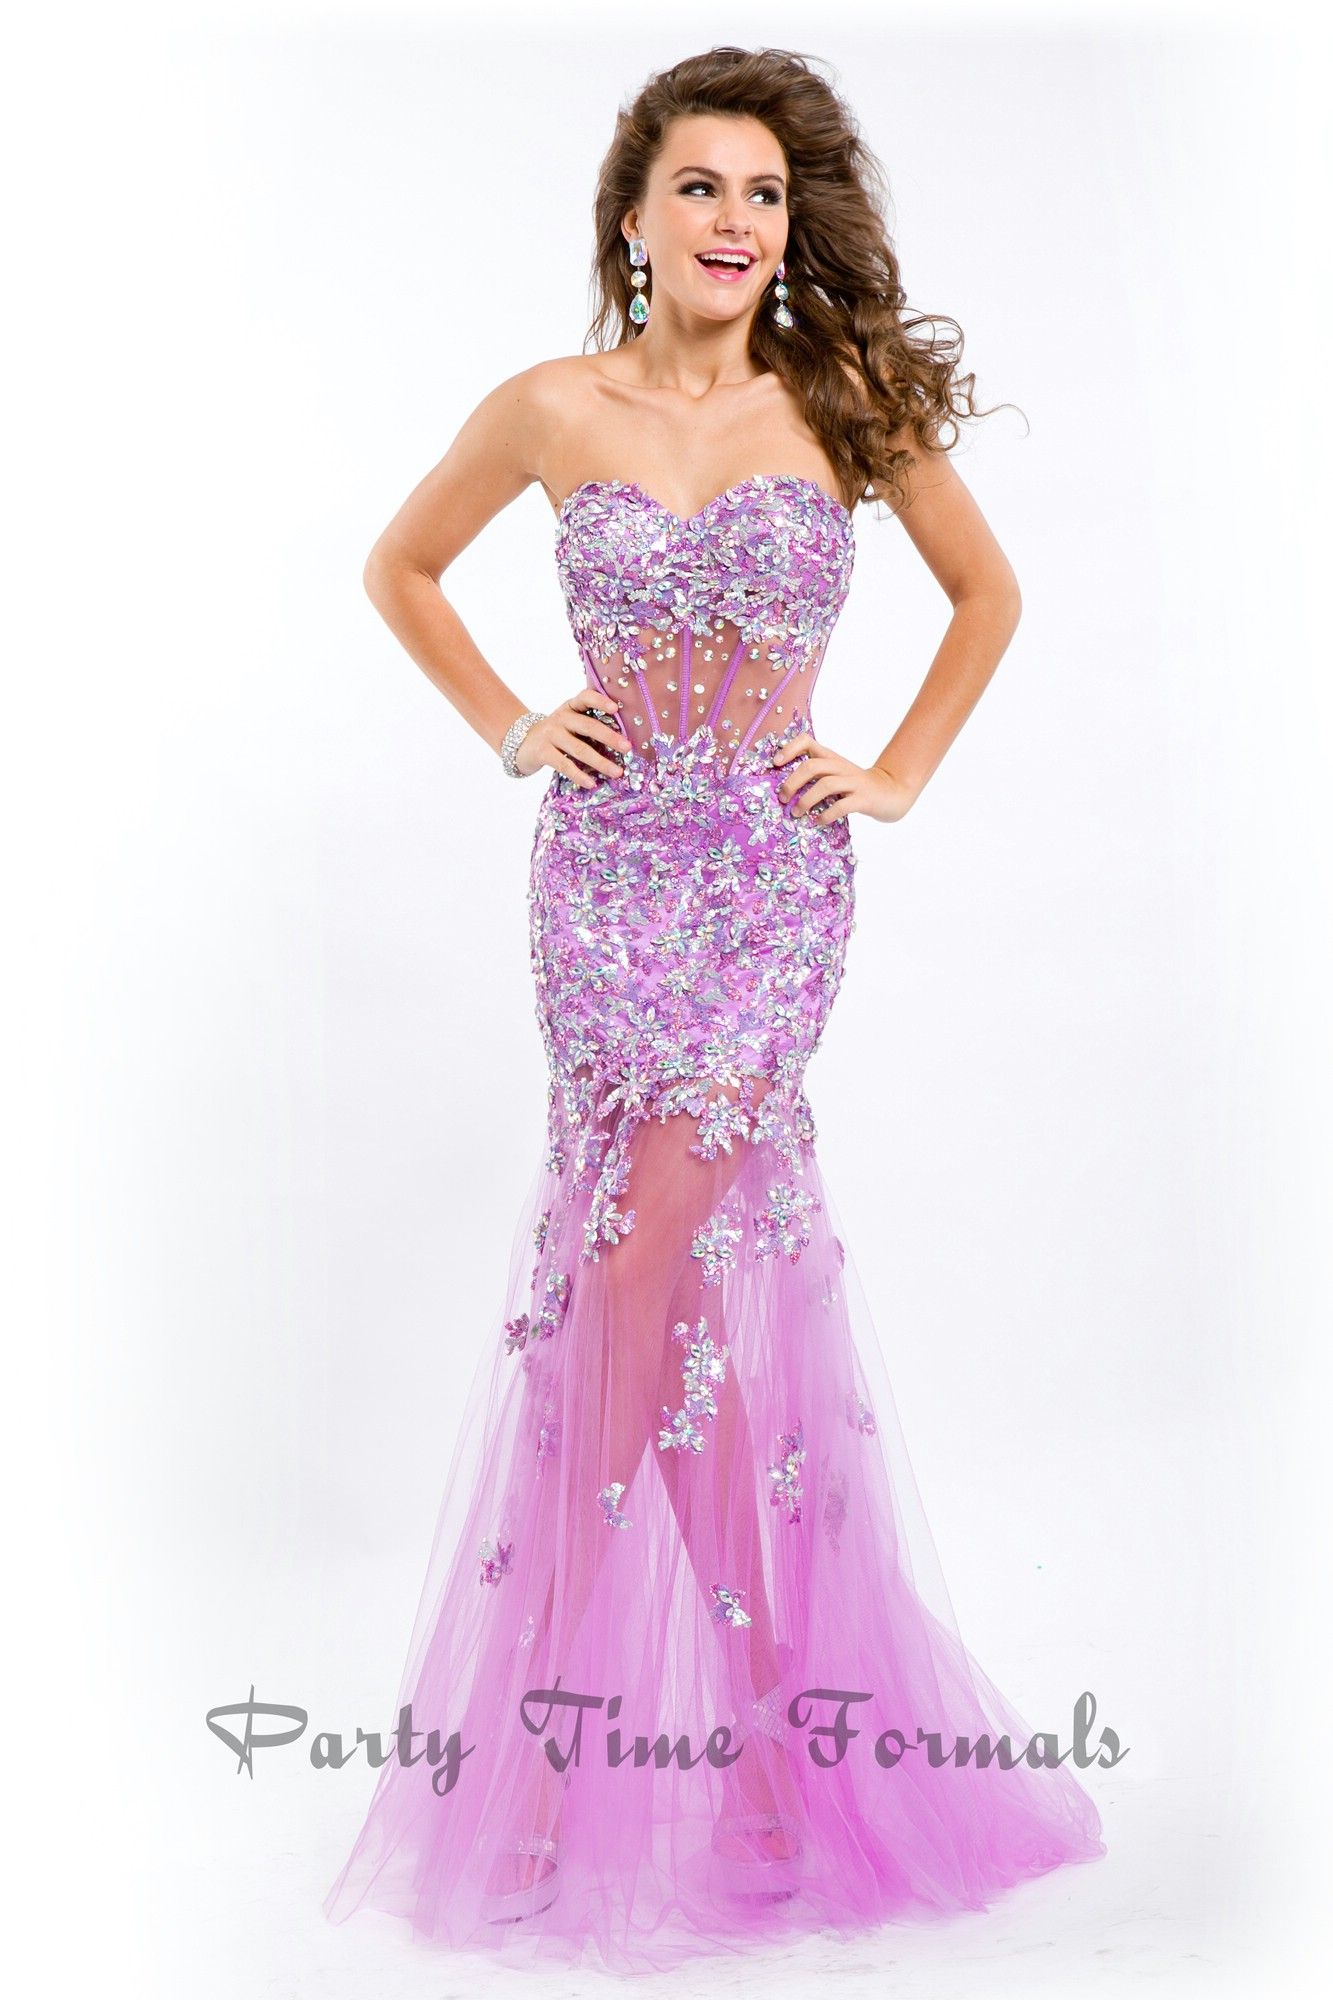 prom dresses 2014 | Party Time 2014 Prom Dress Style 6465 | dresses ...